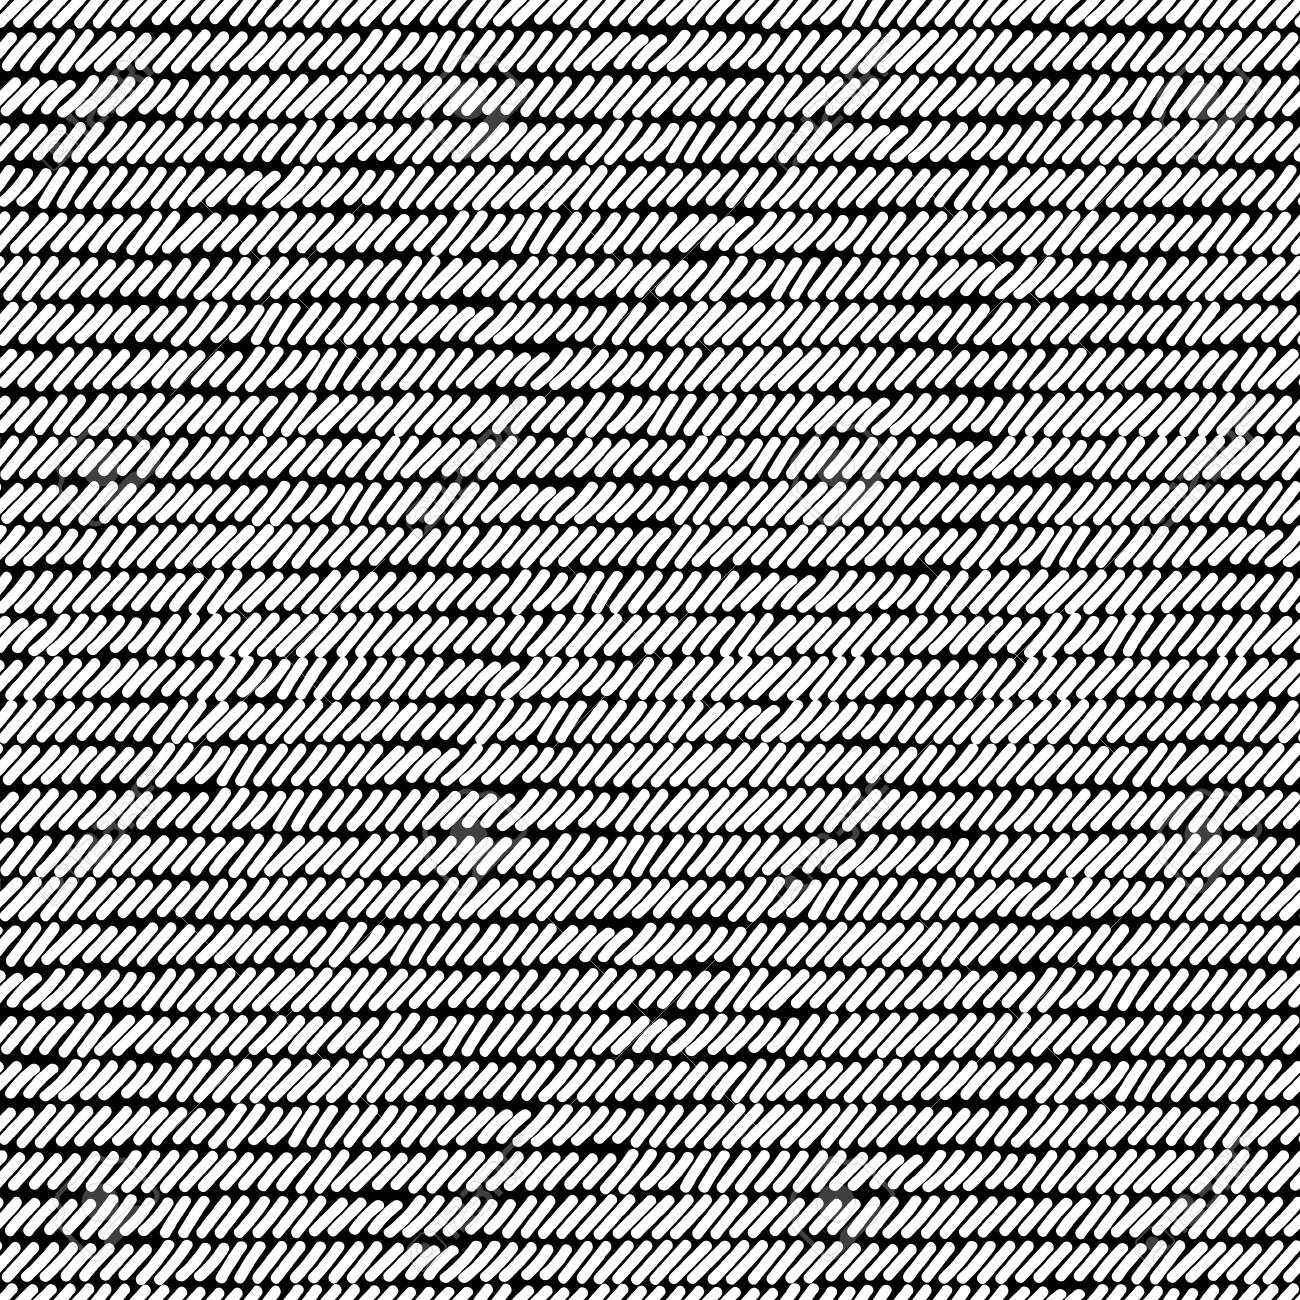 Picture of: Black And White Rug Woven Striped Fabric Seamless Pattern Vector Royalty Free Cliparts Vectors And Stock Illustration Image 85774443